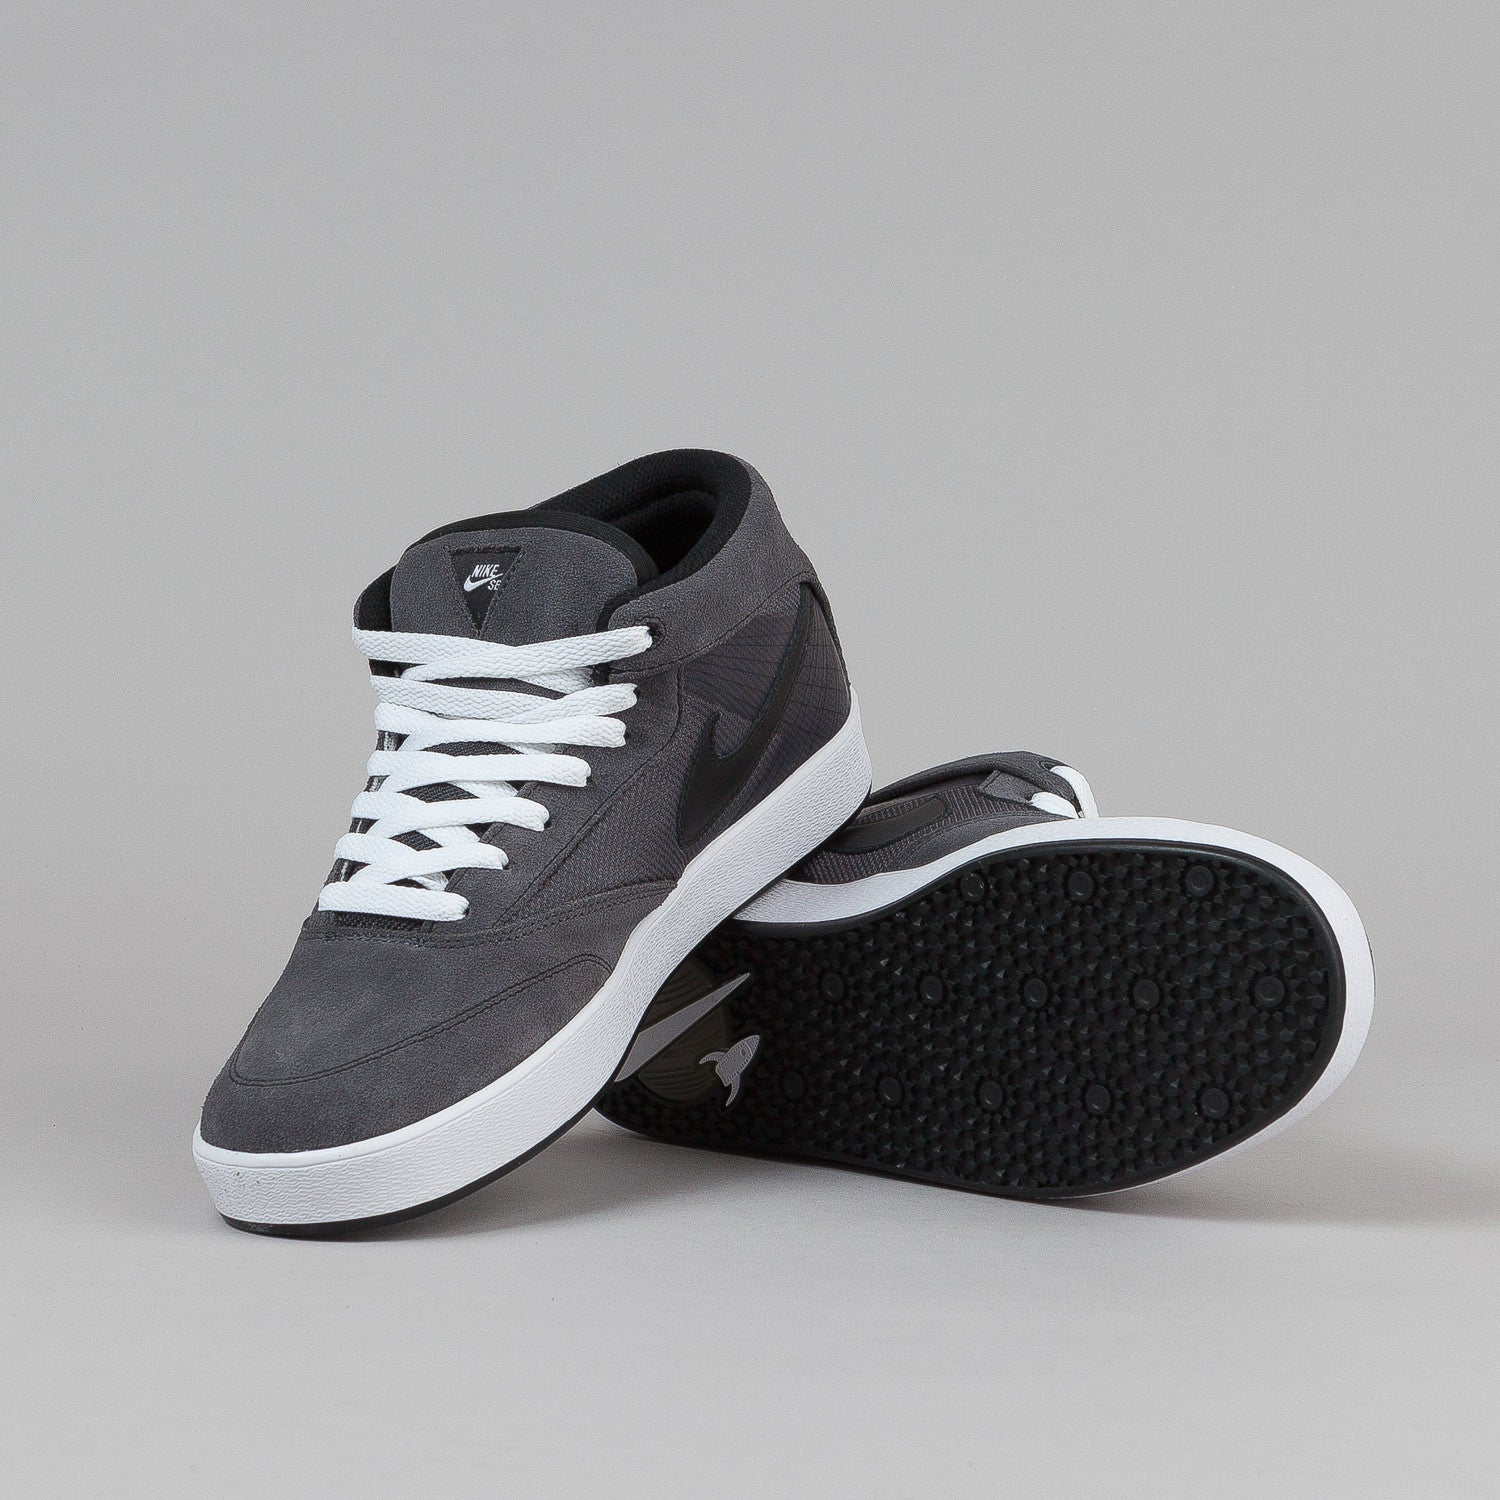 Nike SB Omar Salazar Shoes - Anthracite / Black